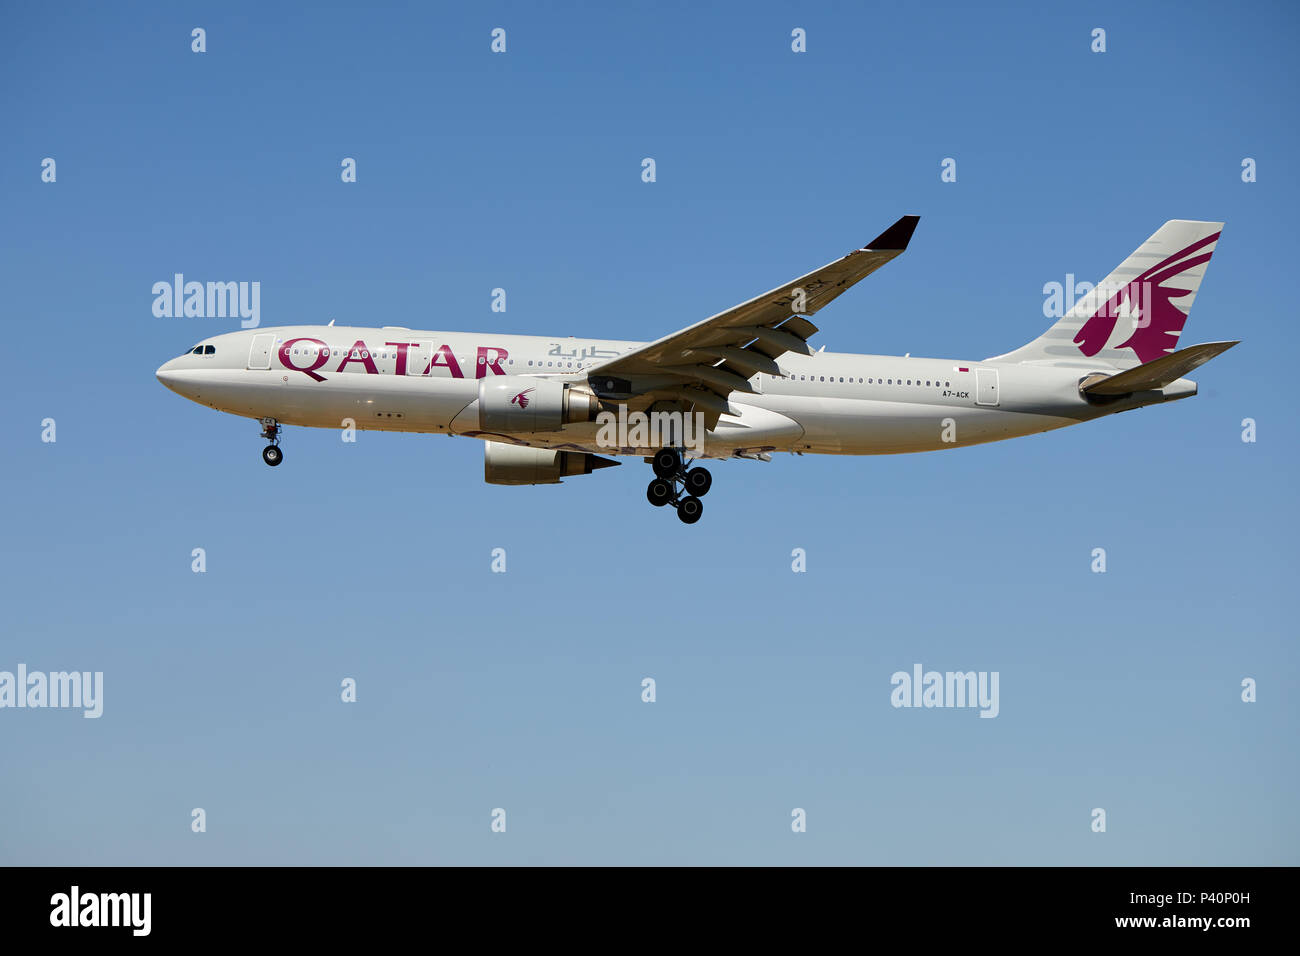 A Qatar Airways Airbus A330-202 aircraft, registration number A7-ACK, approaching a landing at Heathrow Airport, London. - Stock Image